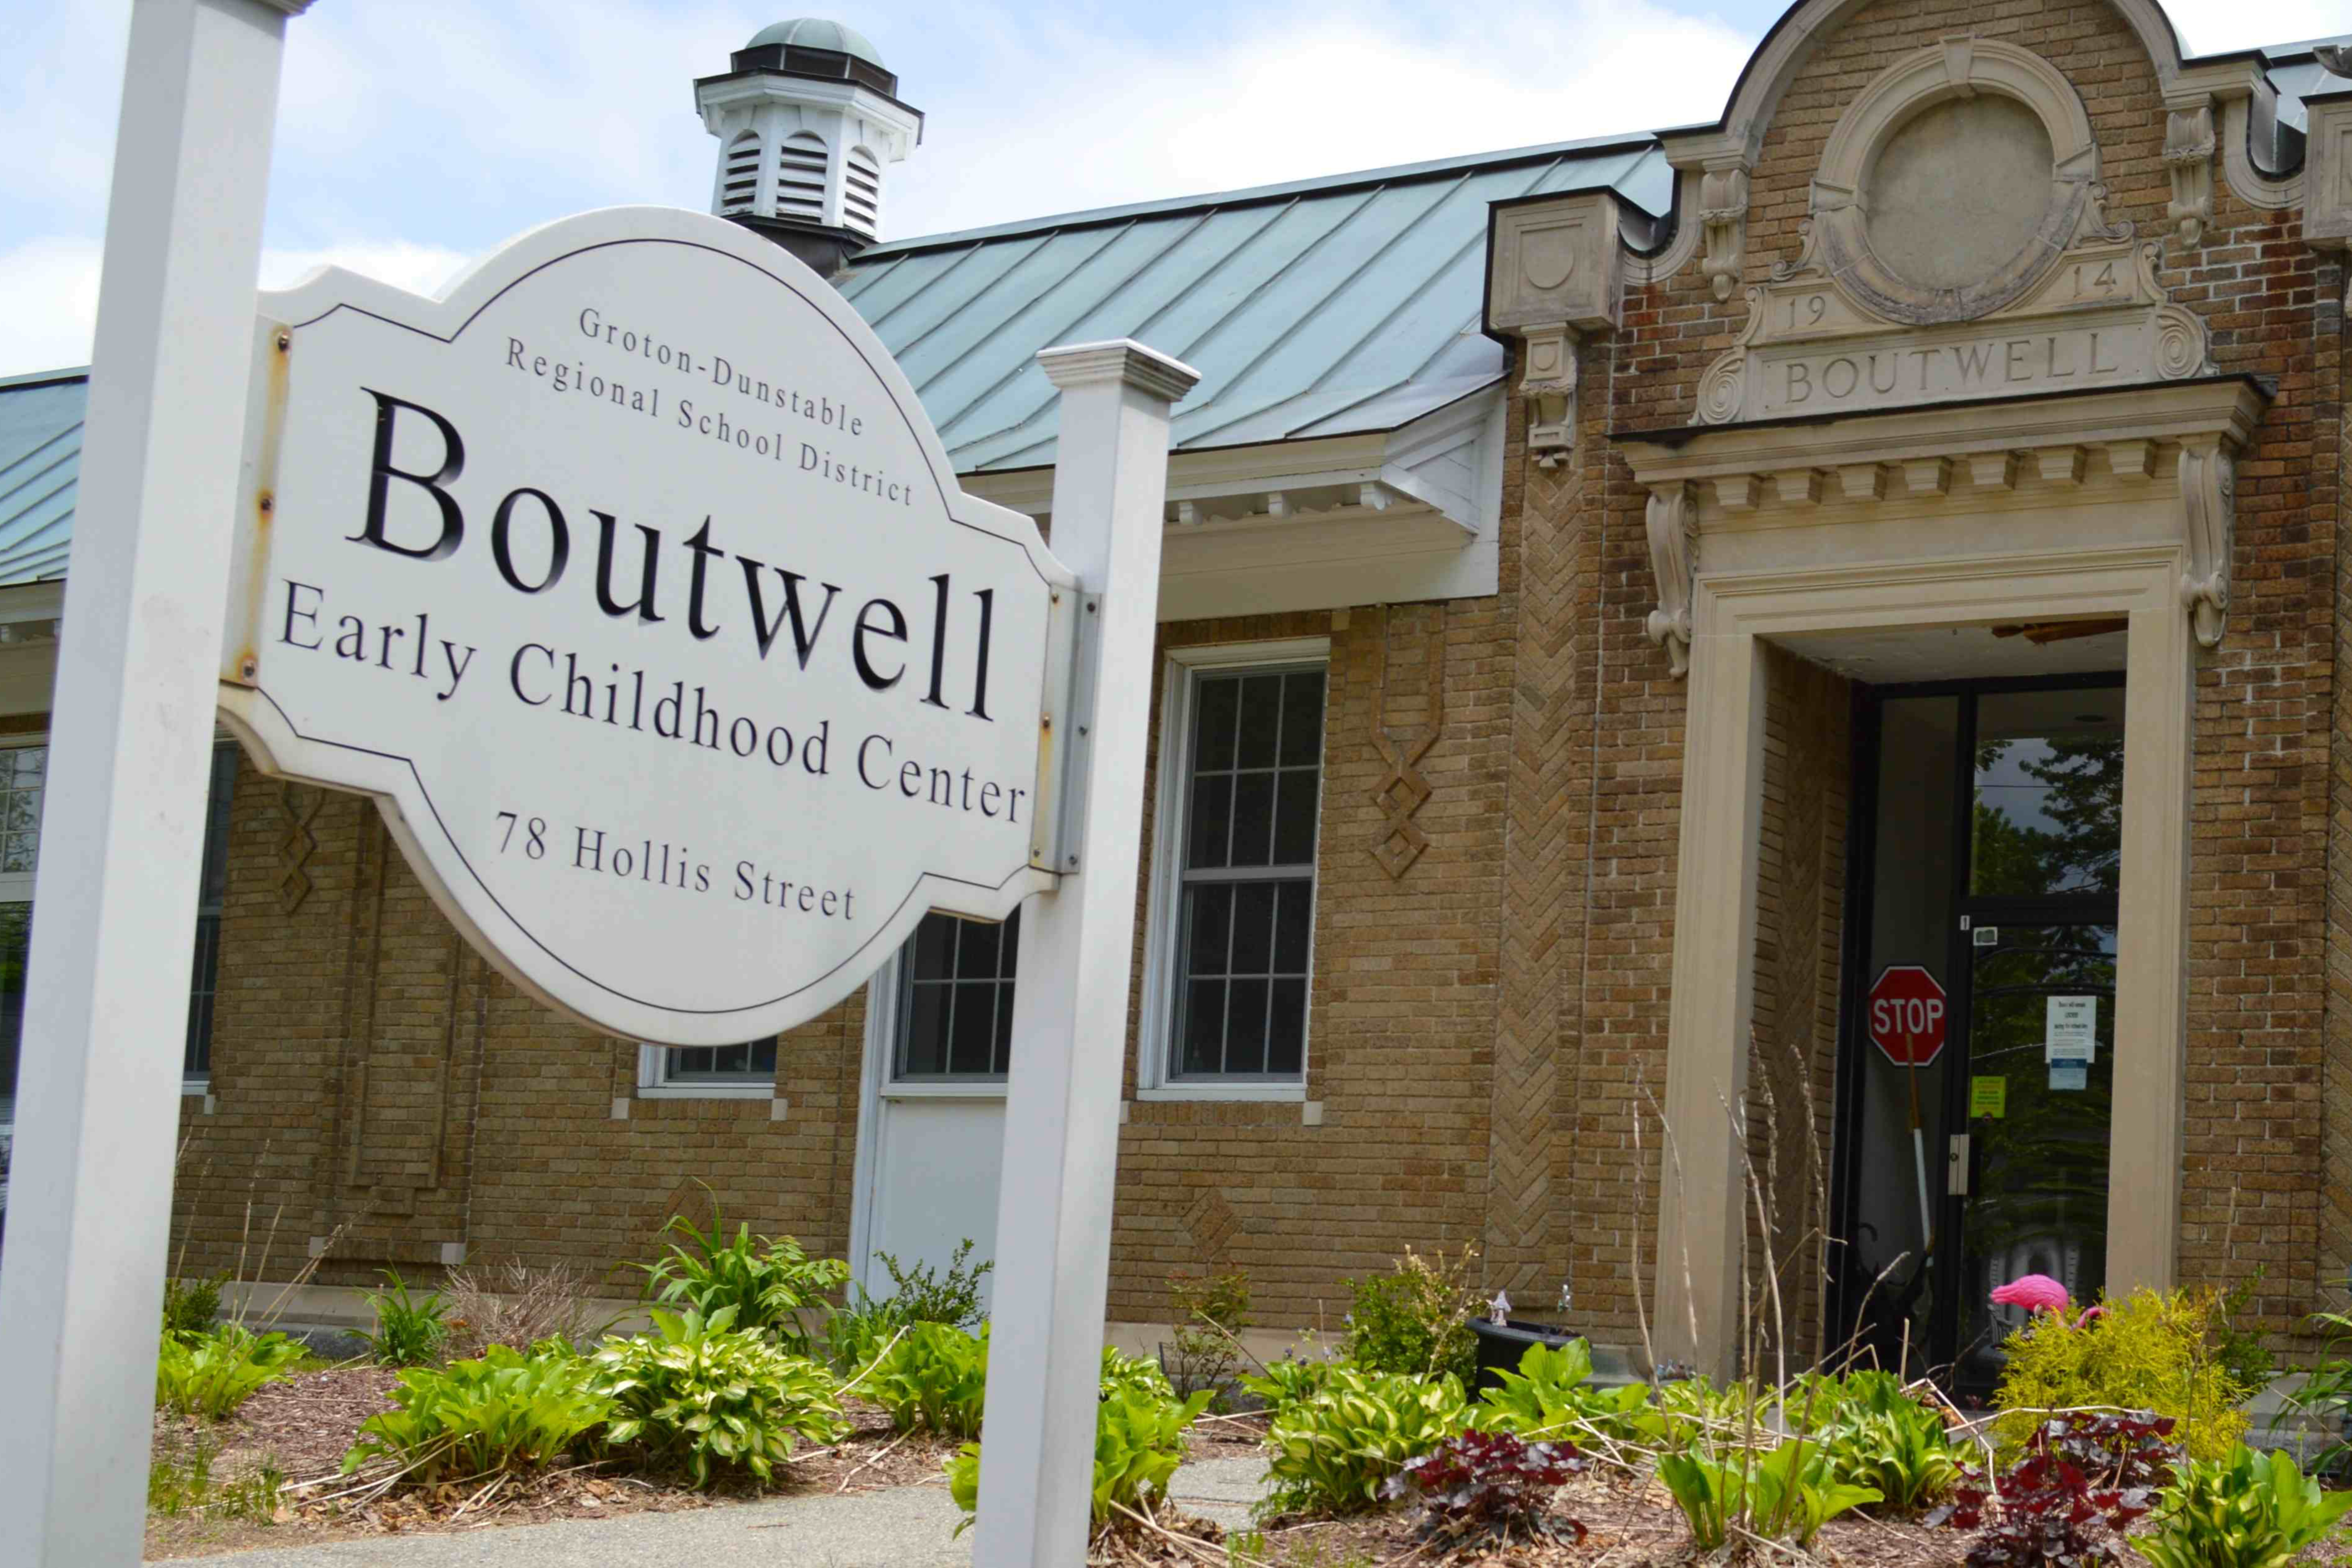 Boutwell Early Childhood Center